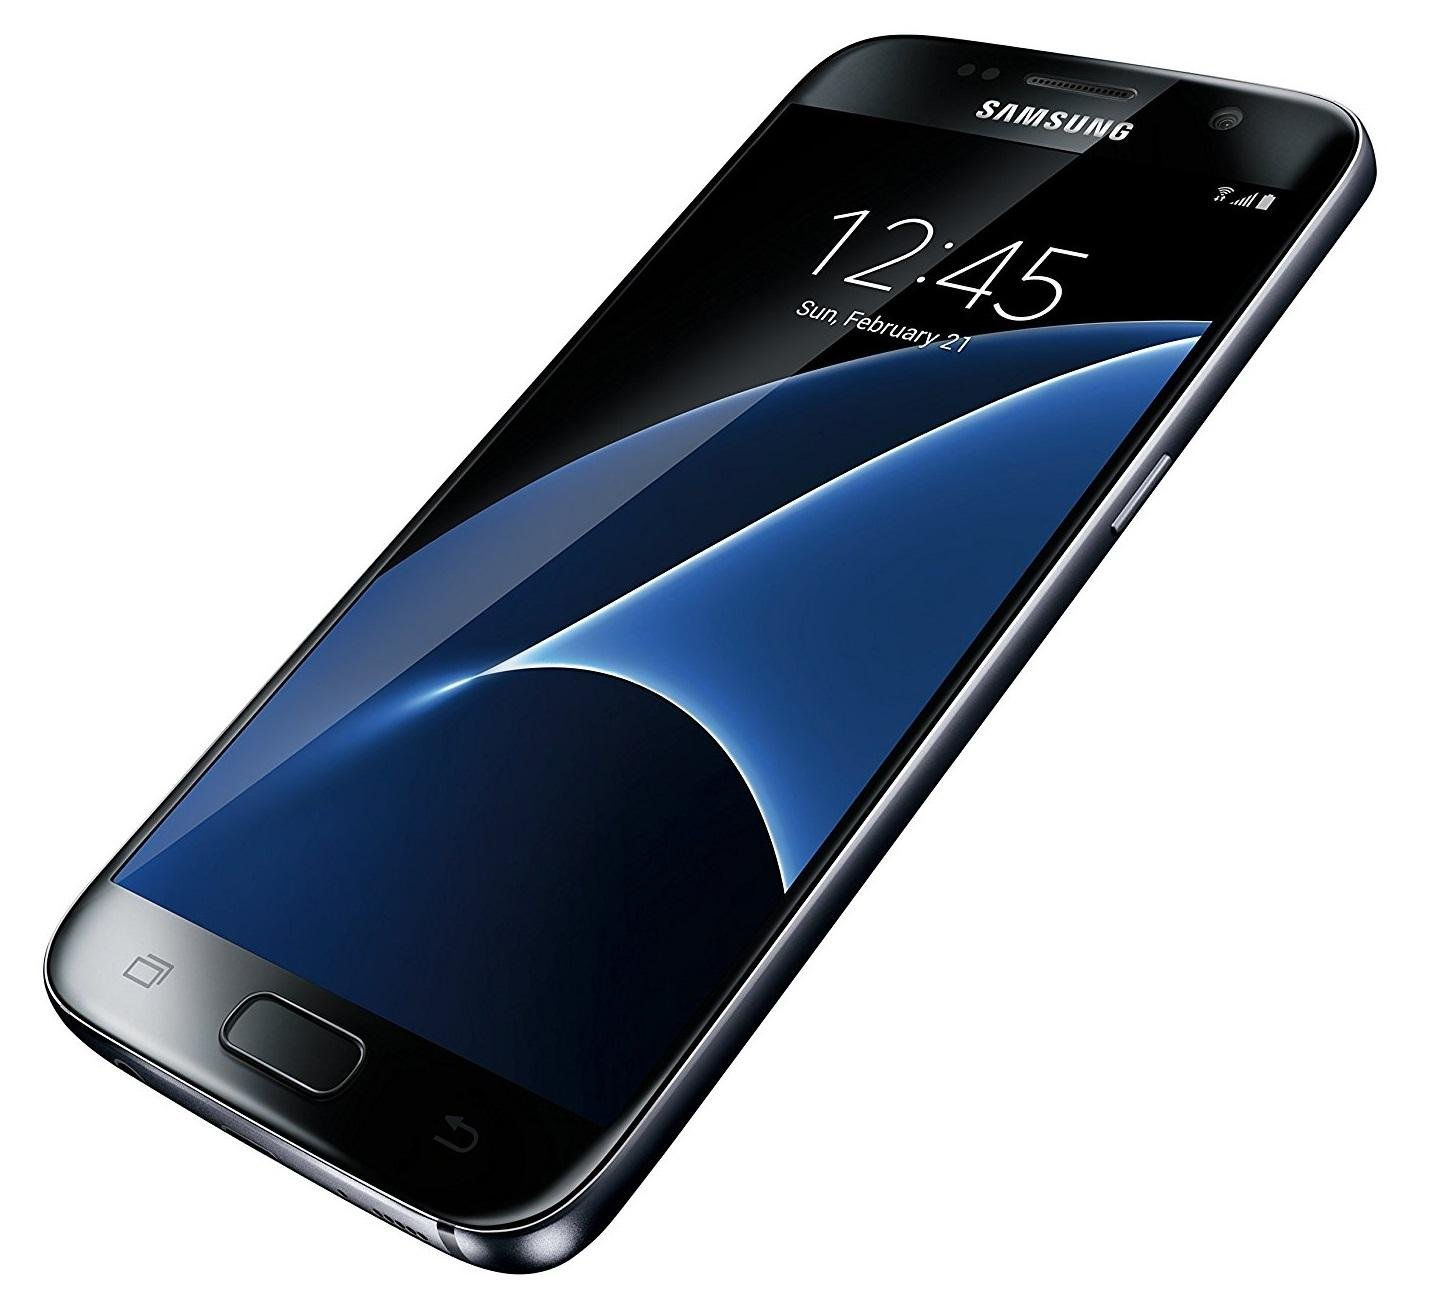 Samsung Galaxy S7 SM-G930T - 32GB - GSM Unlocked - Black Onyx (Certified Refurbished) by Samsung (Image #6)